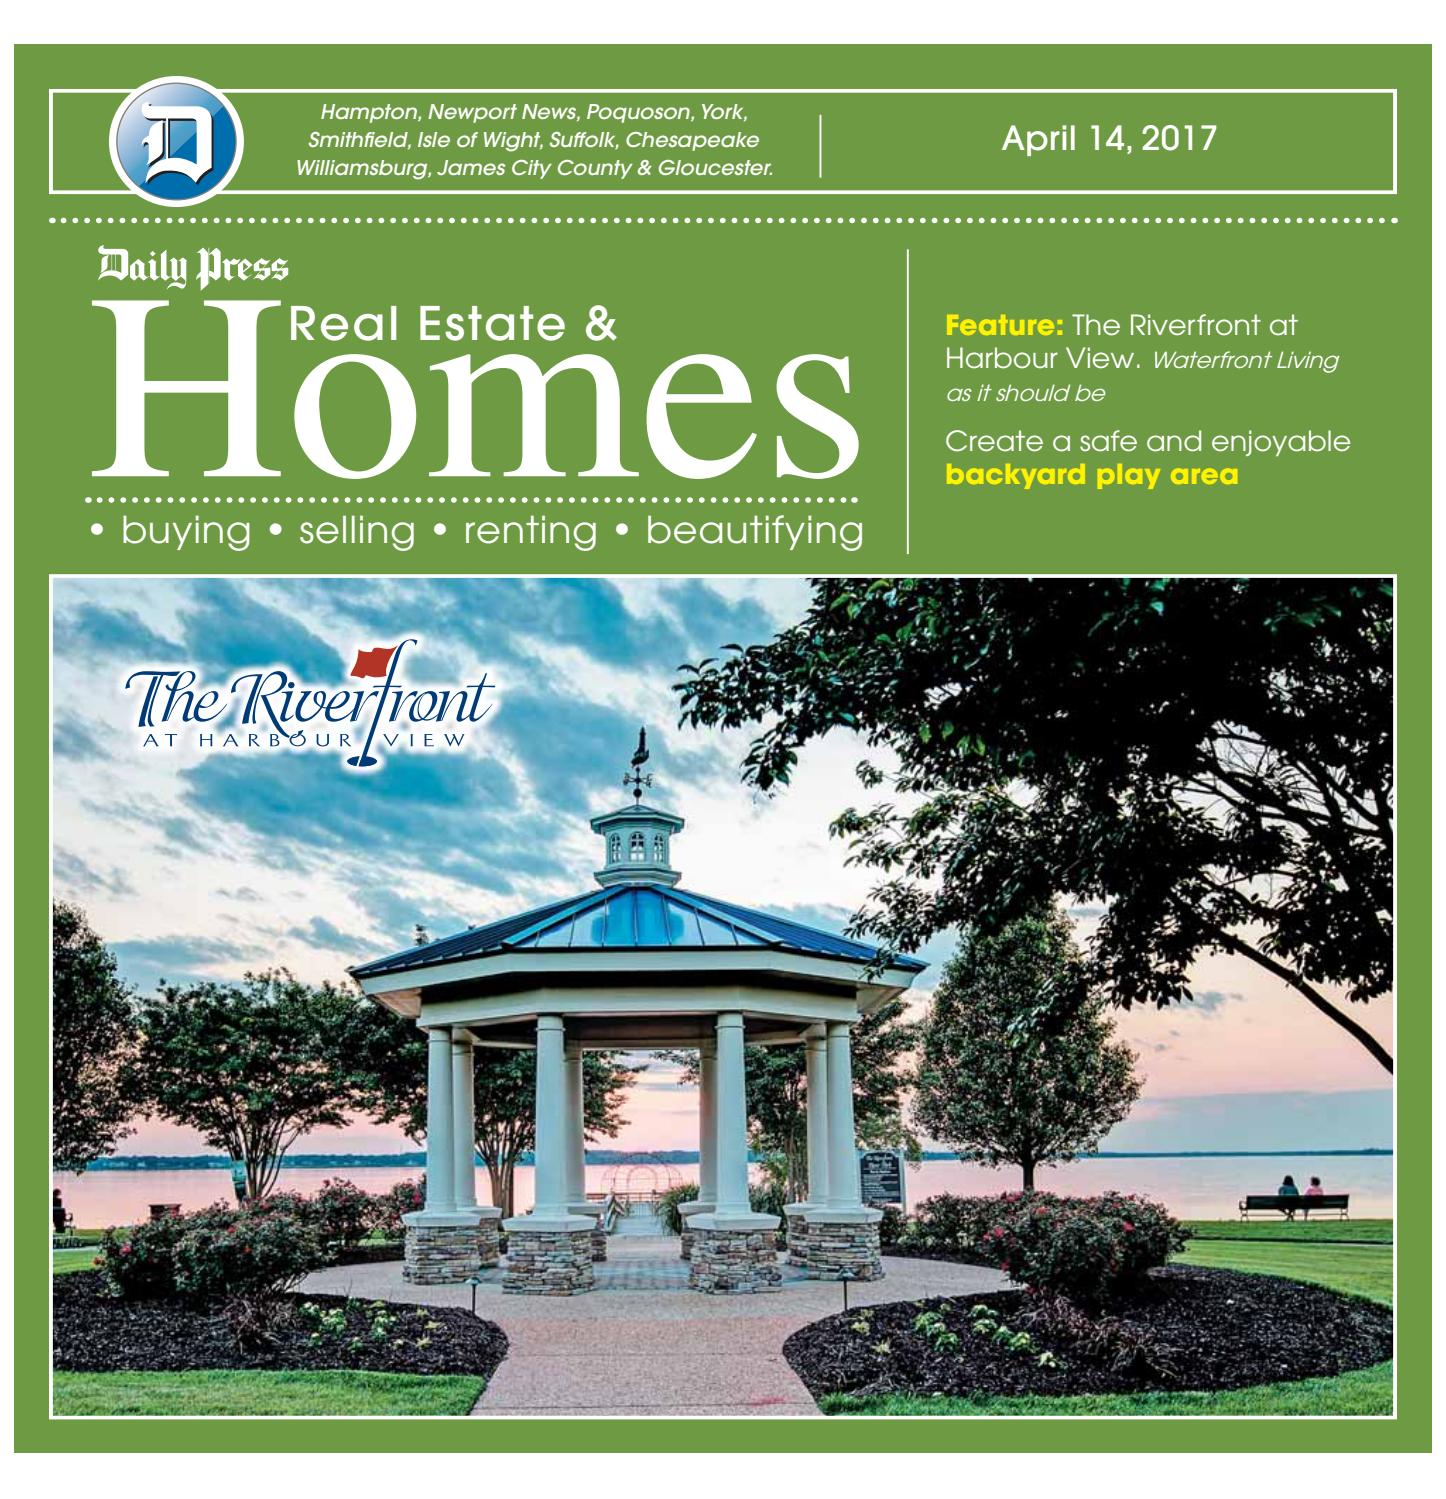 Real Estate & Homes April 14 2017 by Daily Press Media Group - issuu